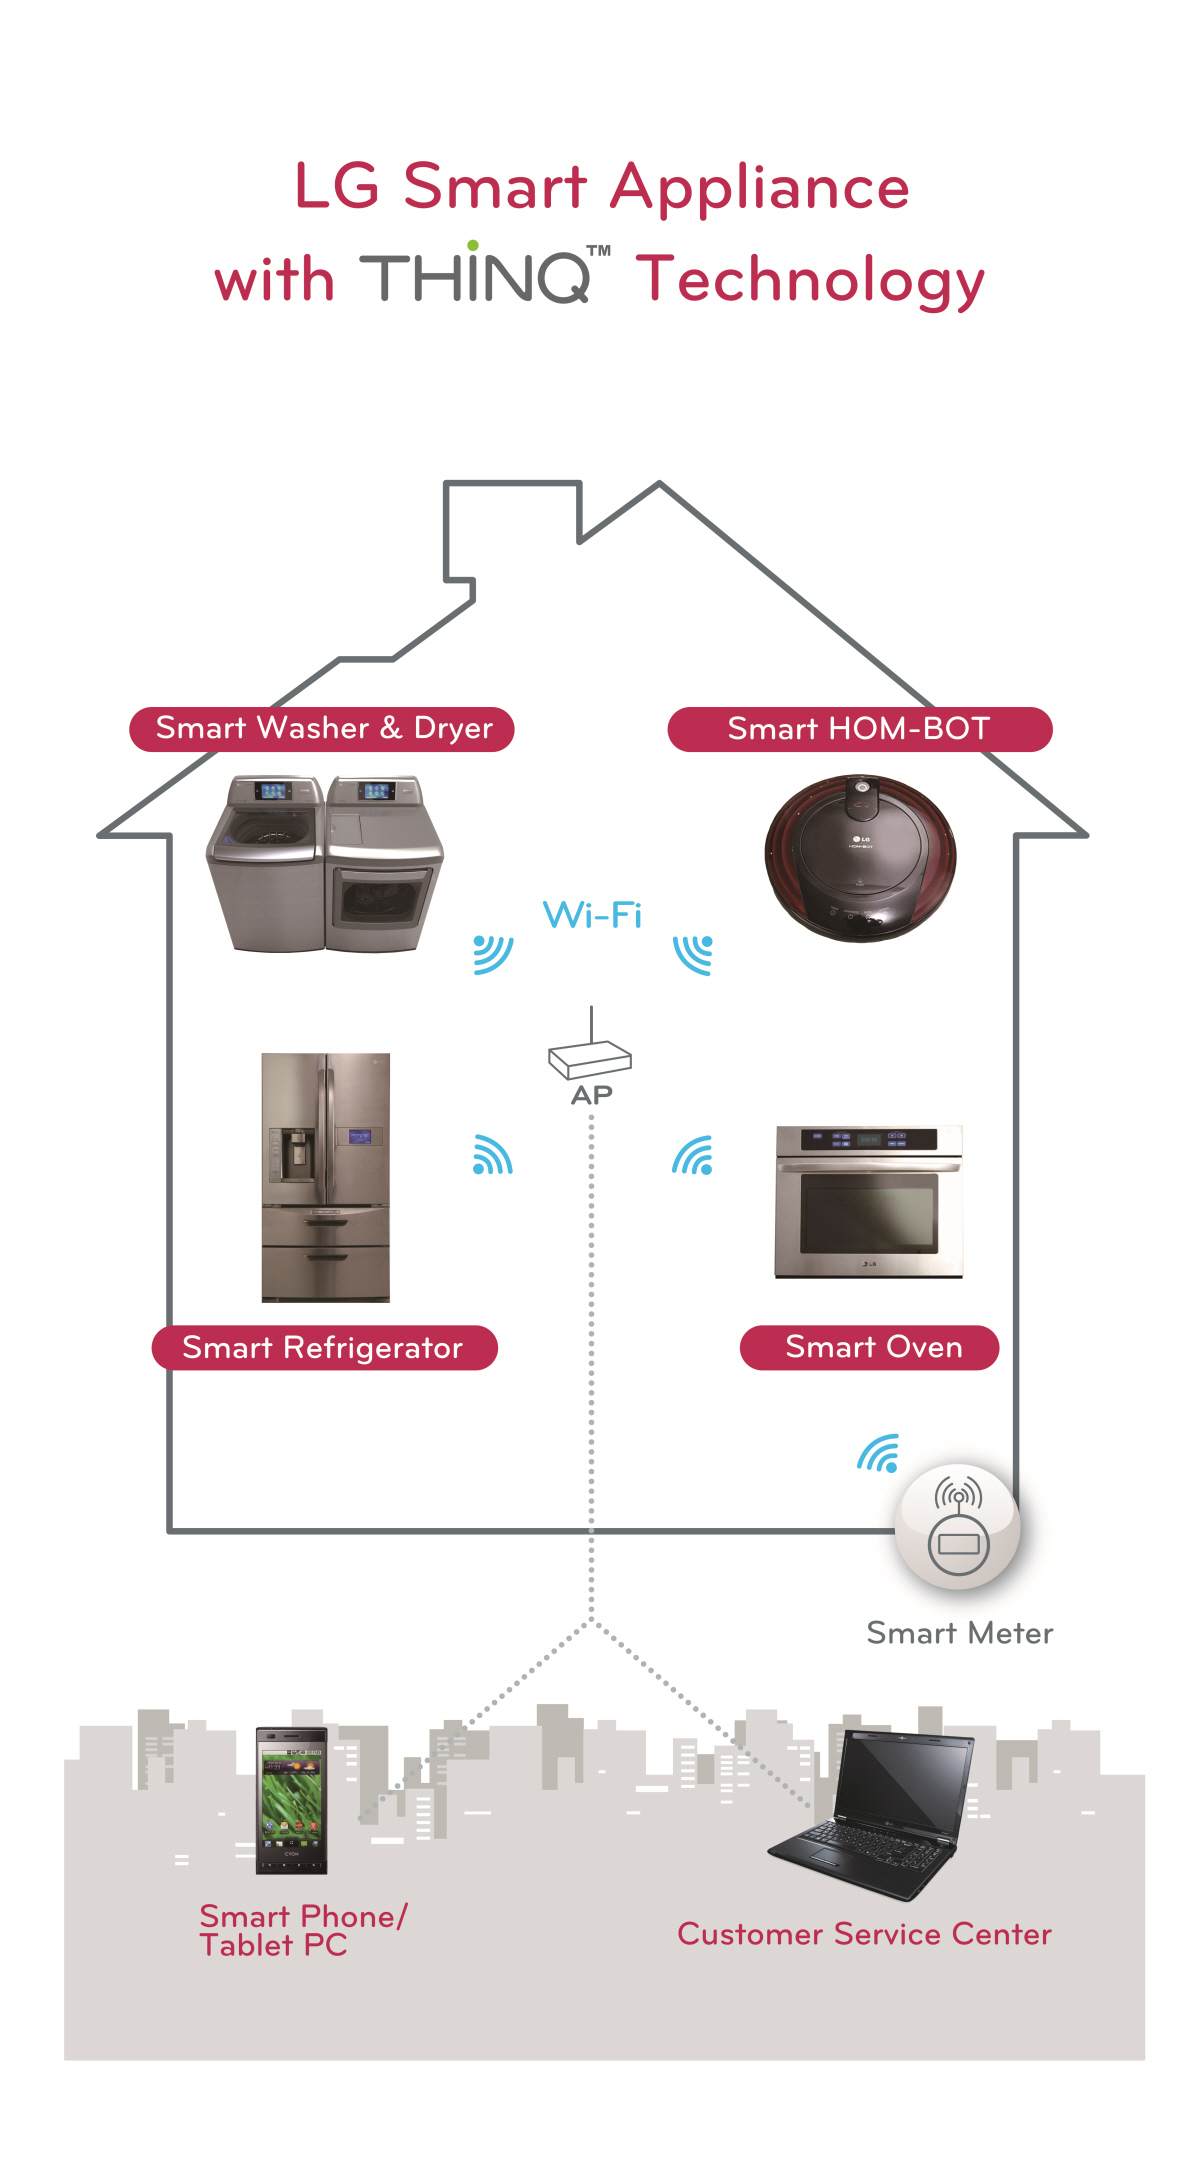 An infographic explaining LG smart appliances, including the company's washing machine & dryer, HOM-BOT, refrigerator and oven with ThinQ™ technology.